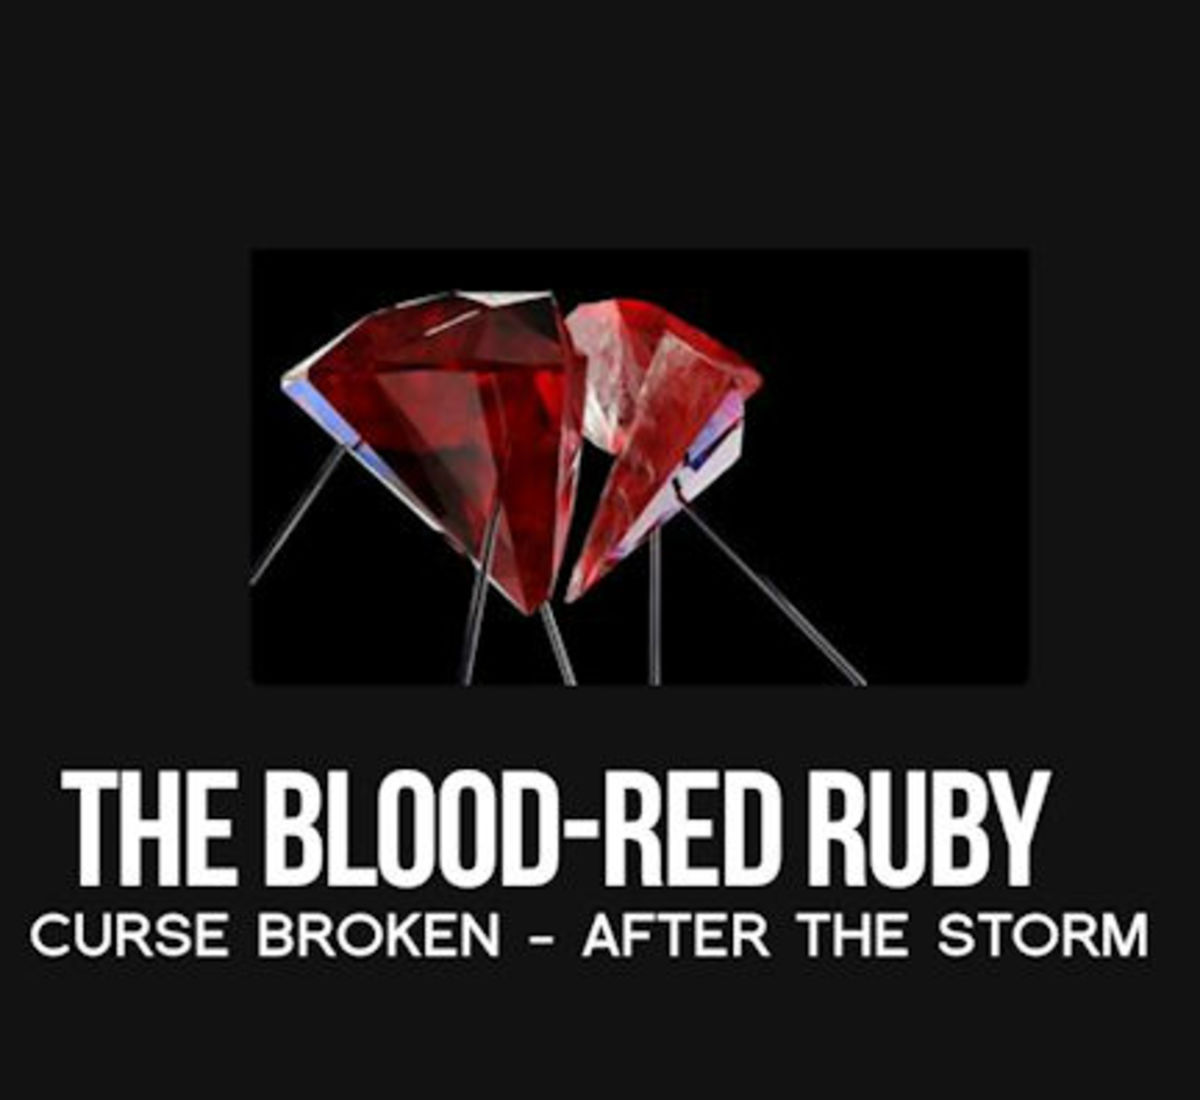 The Blood-Red Ruby: After the Storm 20